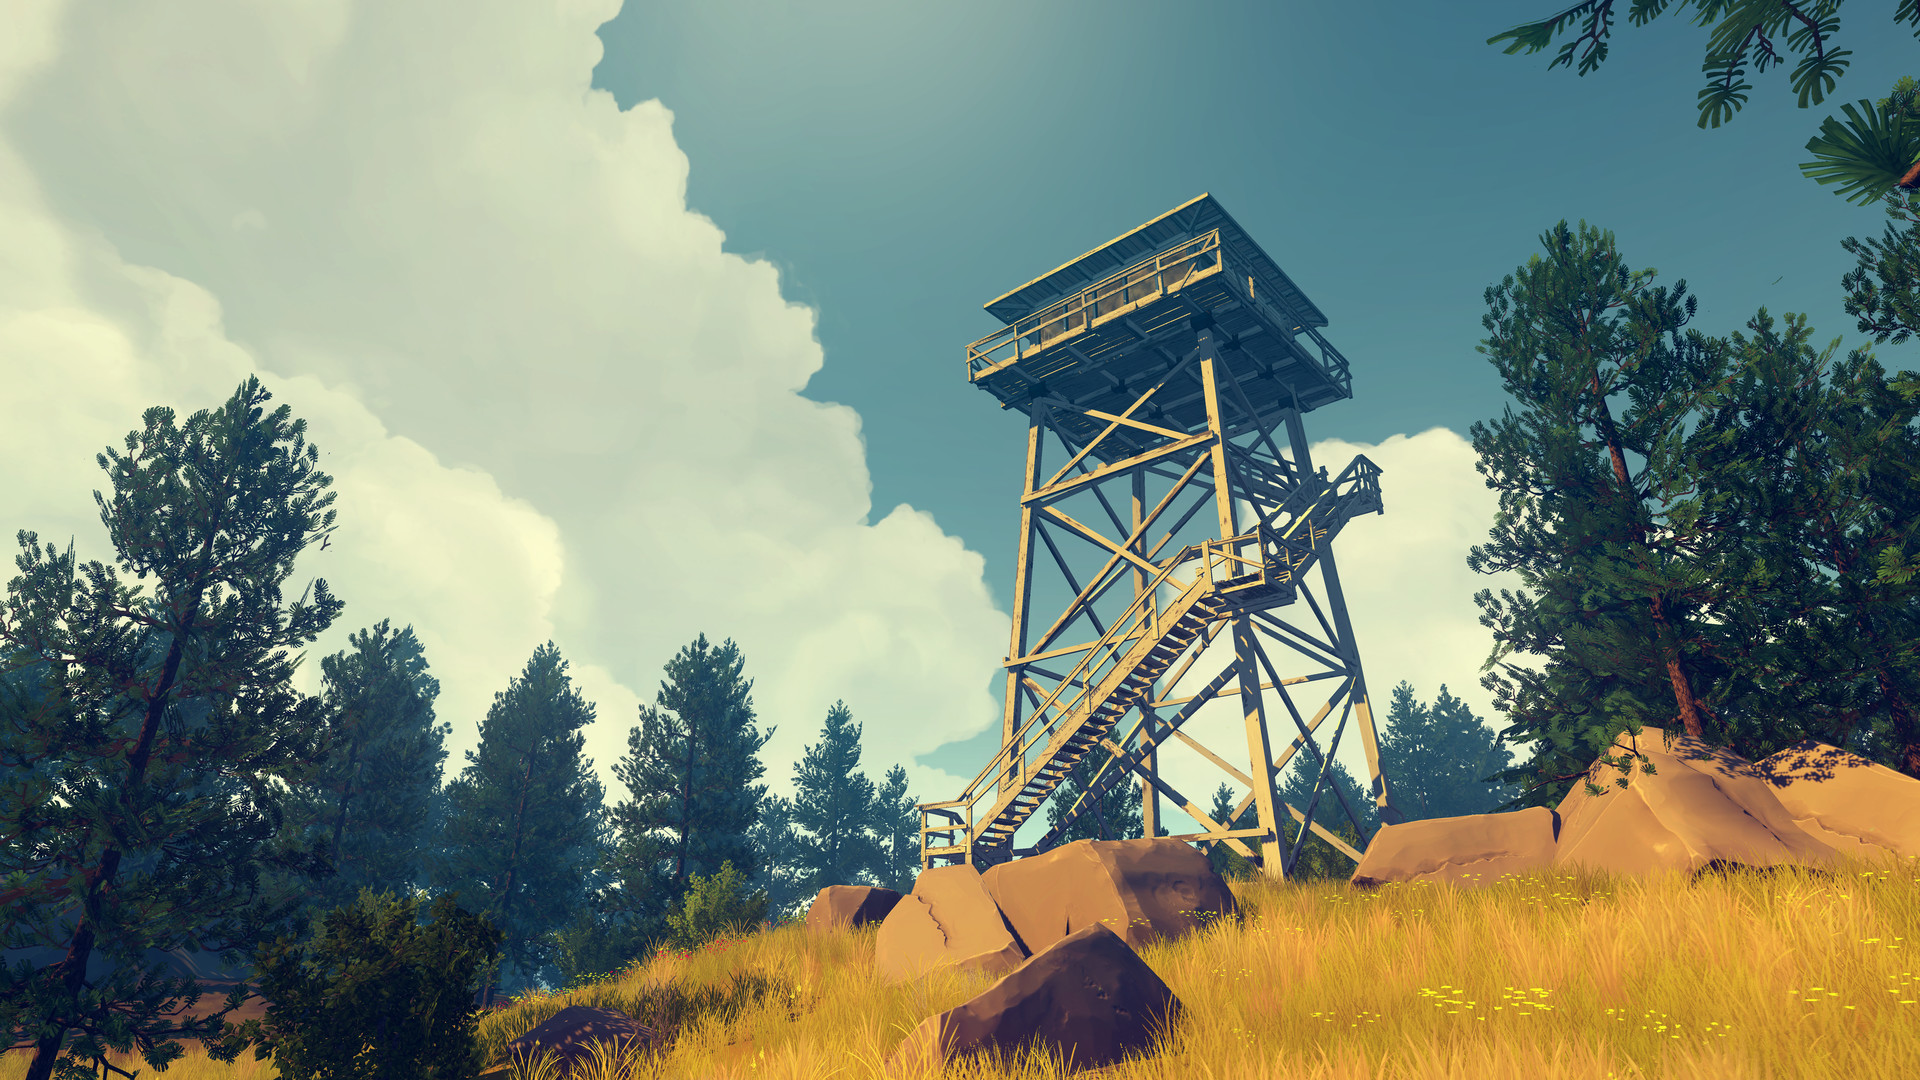 The stunning mystery game Firewatch is headed to the Switch and we're seriously looking forward to it